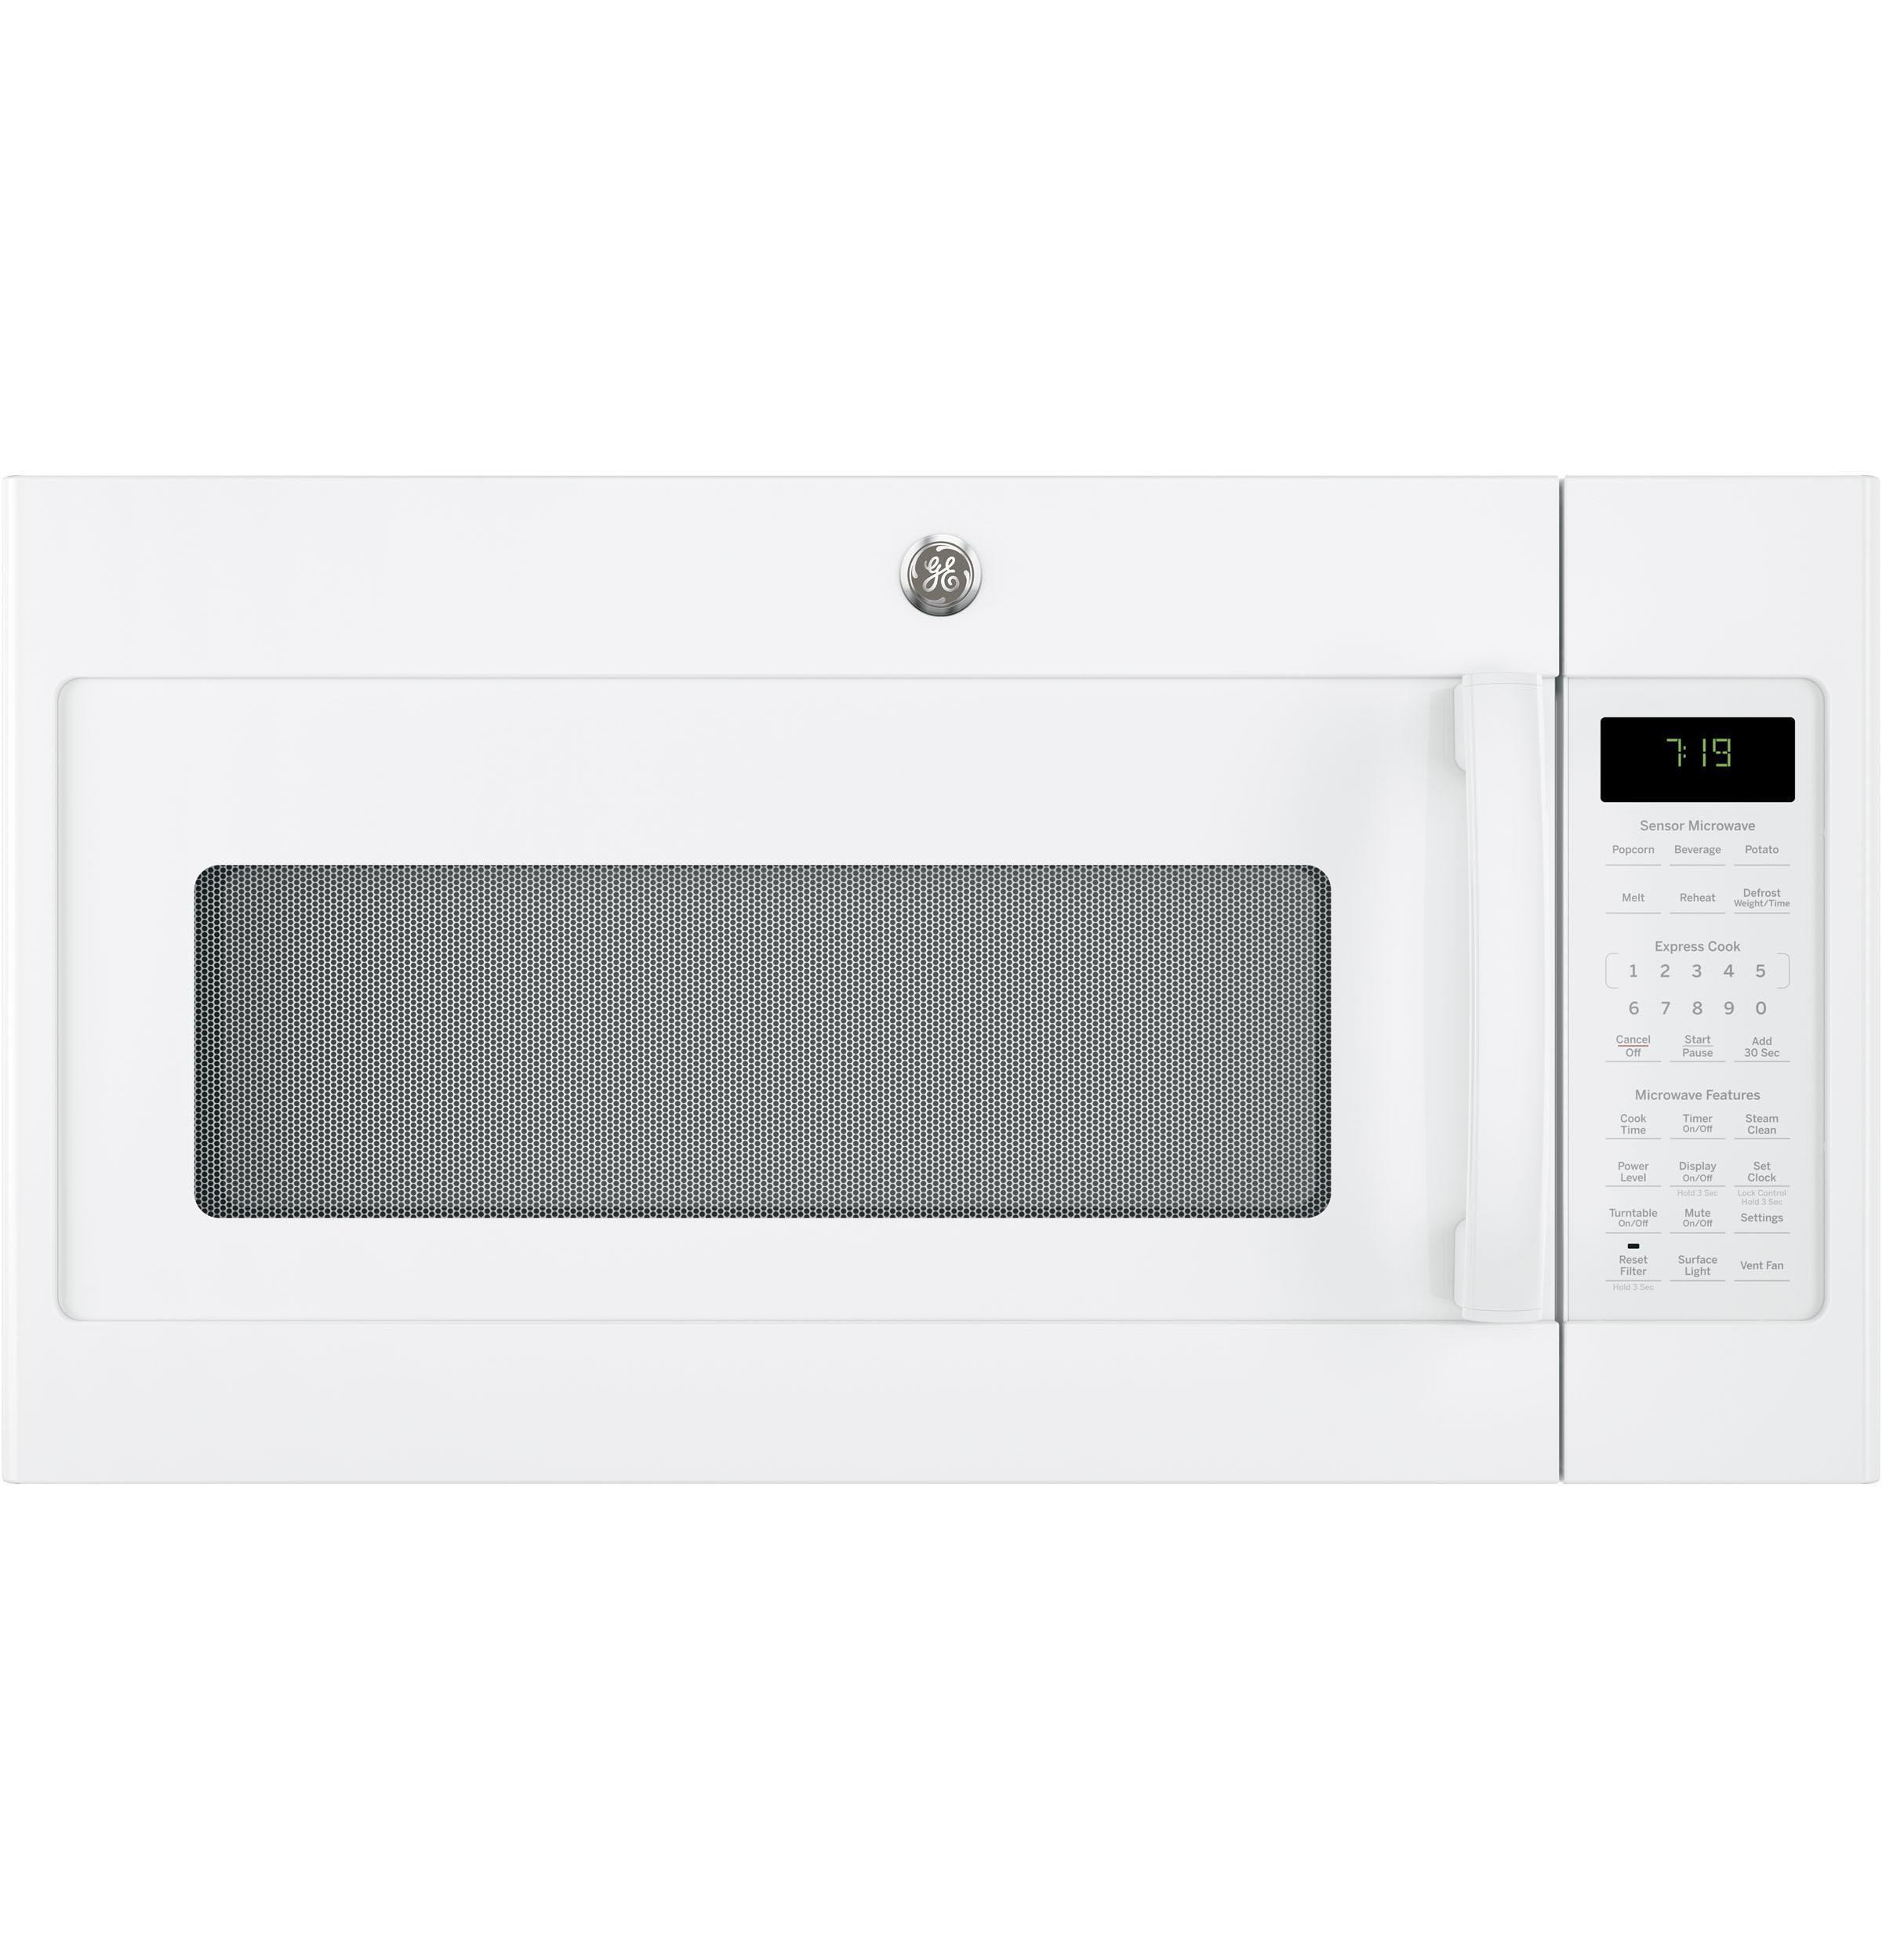 GE APPLIANCES JVM7195DKWW